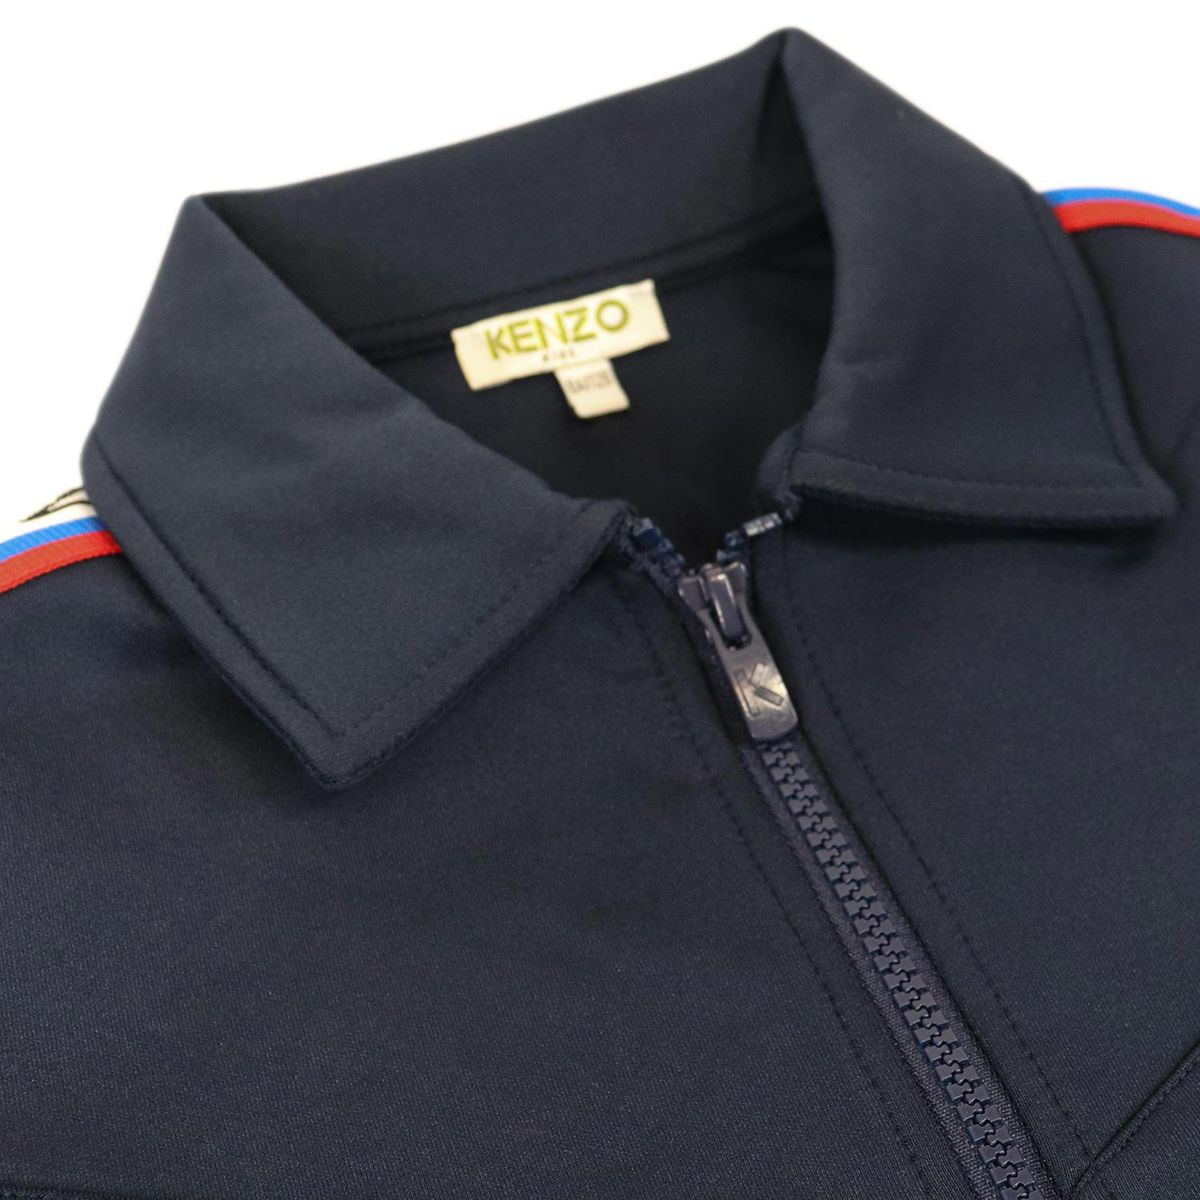 Acetate fabric jacket with zip and logo lettering bands Blue Kenzo